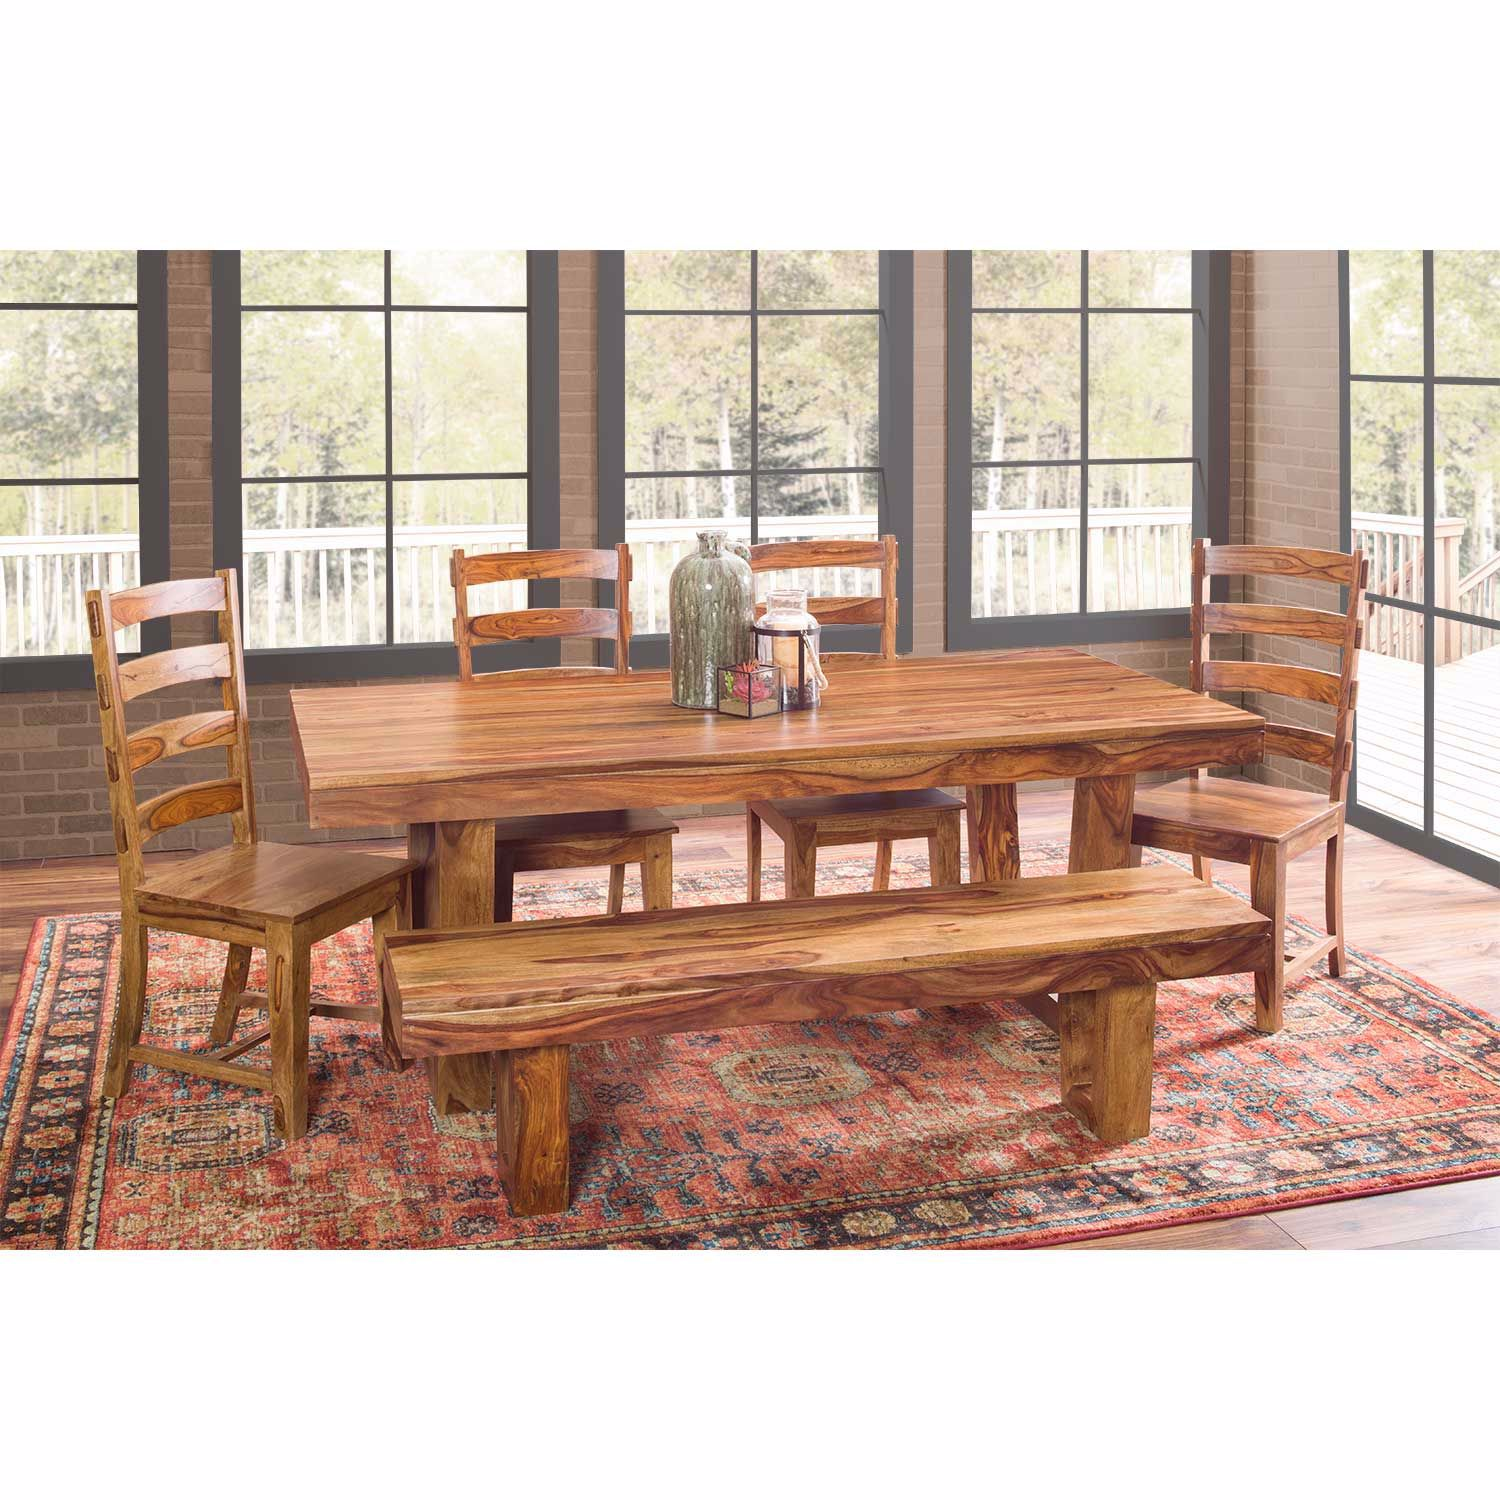 Picture of Prana Cinnamon Dining Bench